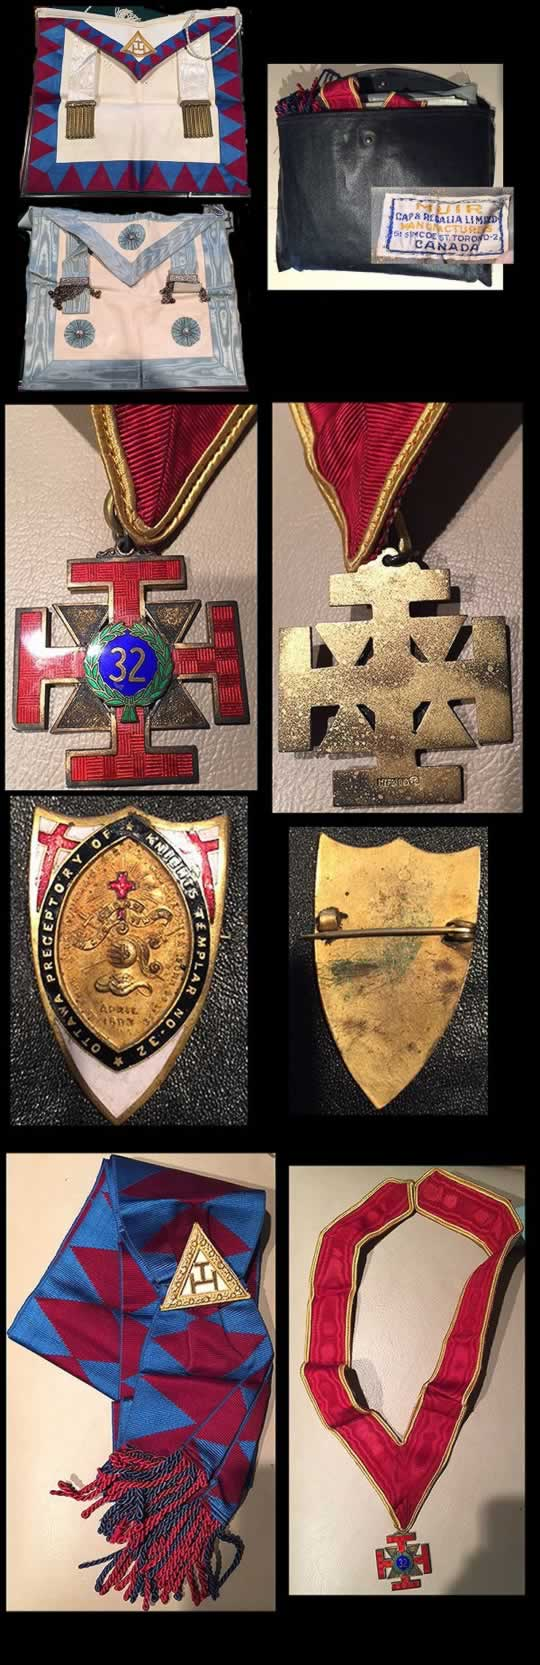 item560_A Superb Masonic Regalia Set.jpg